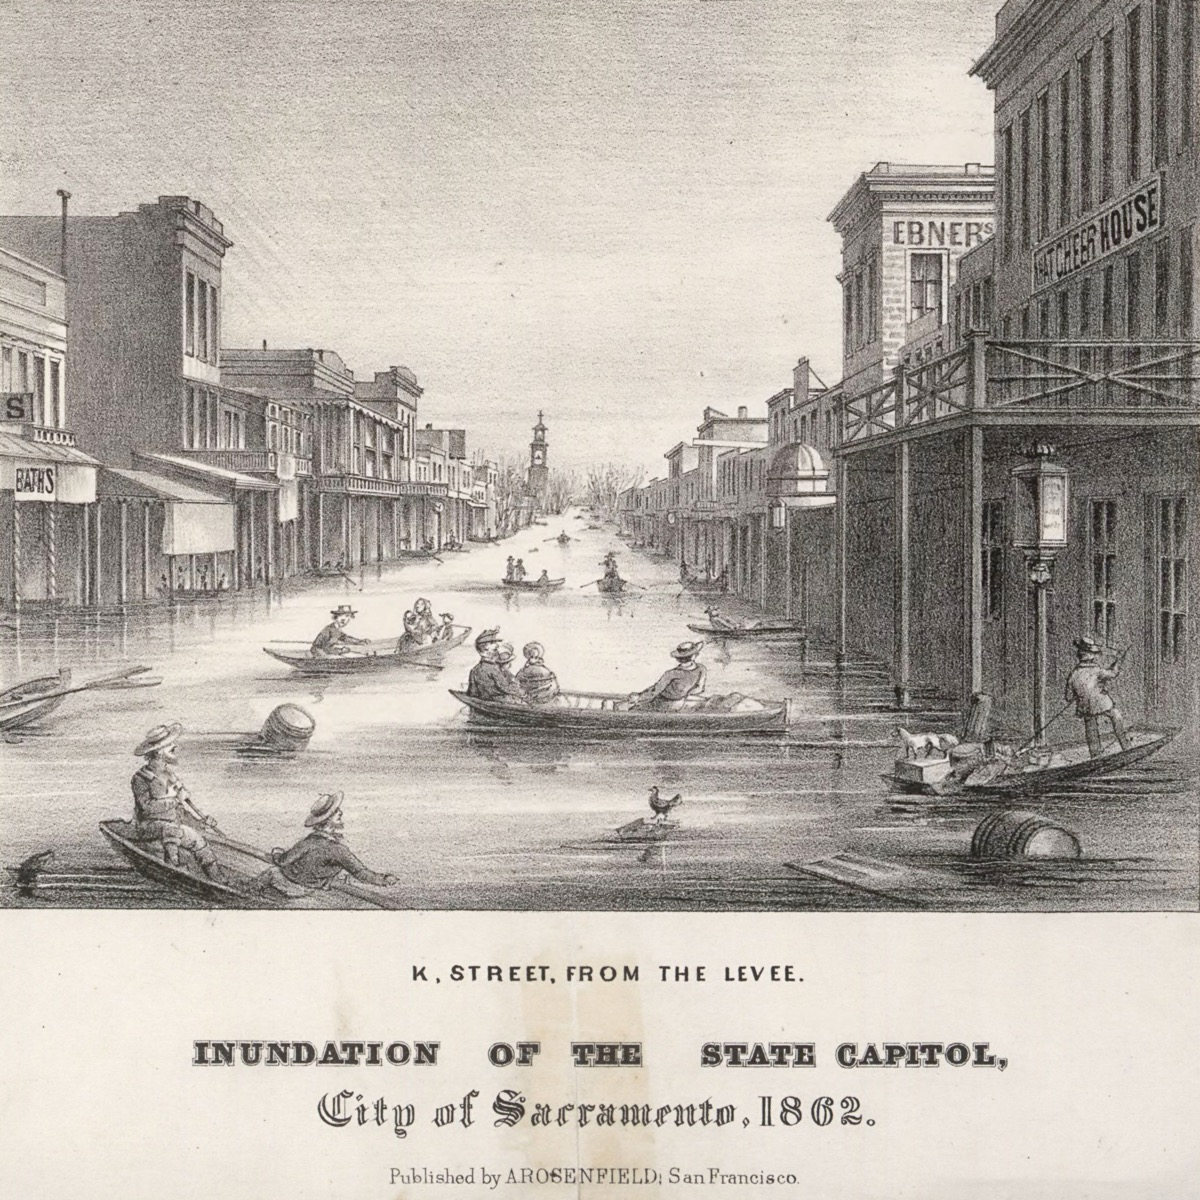 a black and white printed illustration of a flooded street. there are people rowing boats in the flooded street, as well as equipment, barrels, and items floating in the water